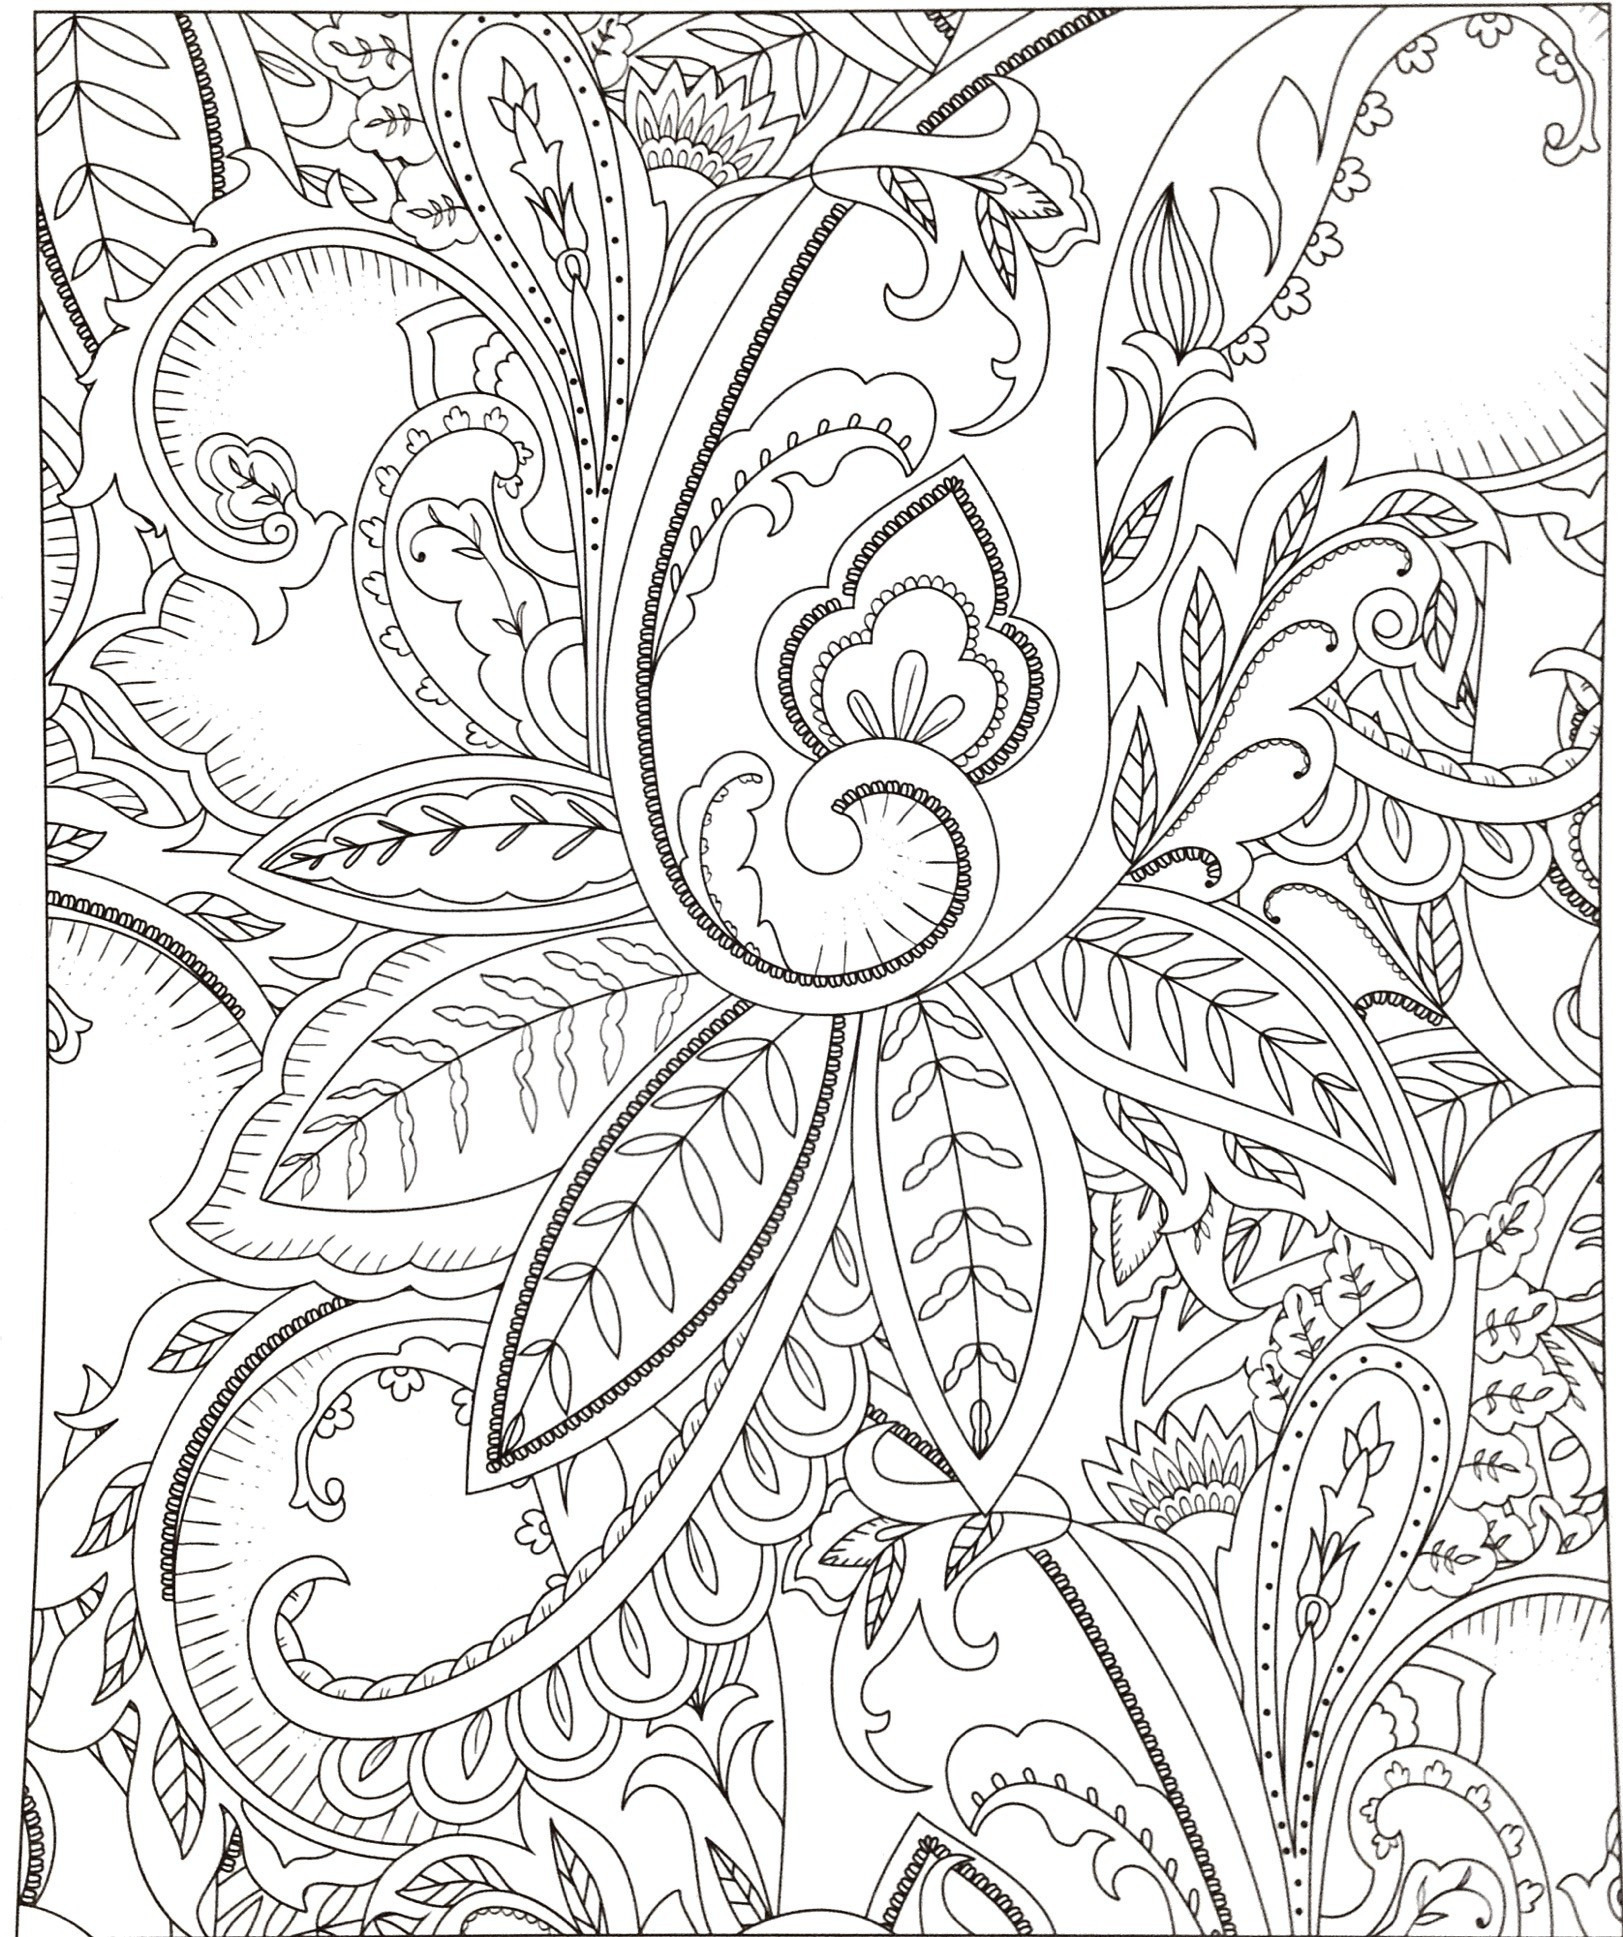 coloring pages hawaiian flowers Collection-Flower Coloring Pages for Kids to Print 30 Lovely Printable Advanced Coloring Pages Cloud9vegas 16-c